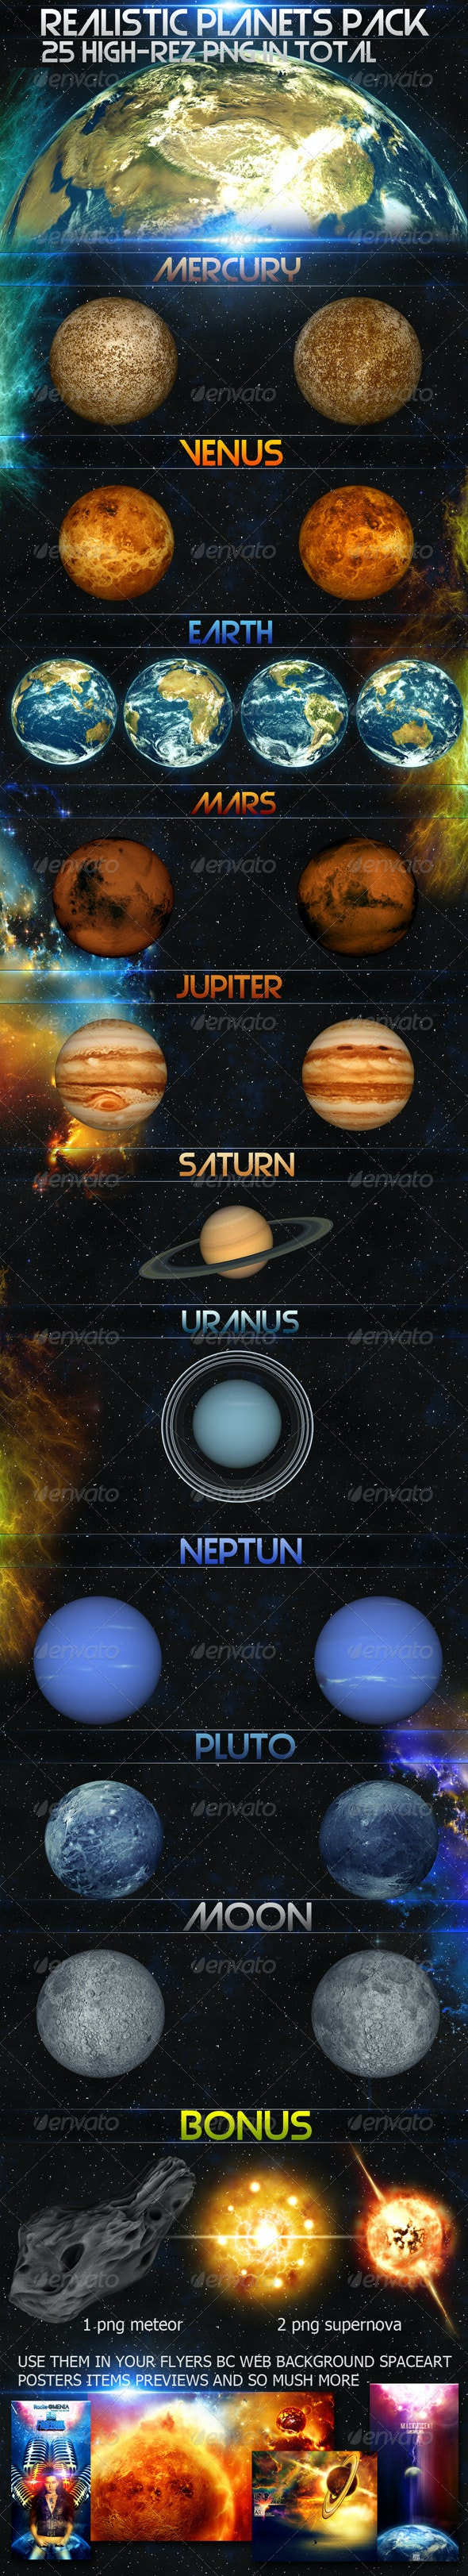 Realistic planets pack - 3D Backgrounds